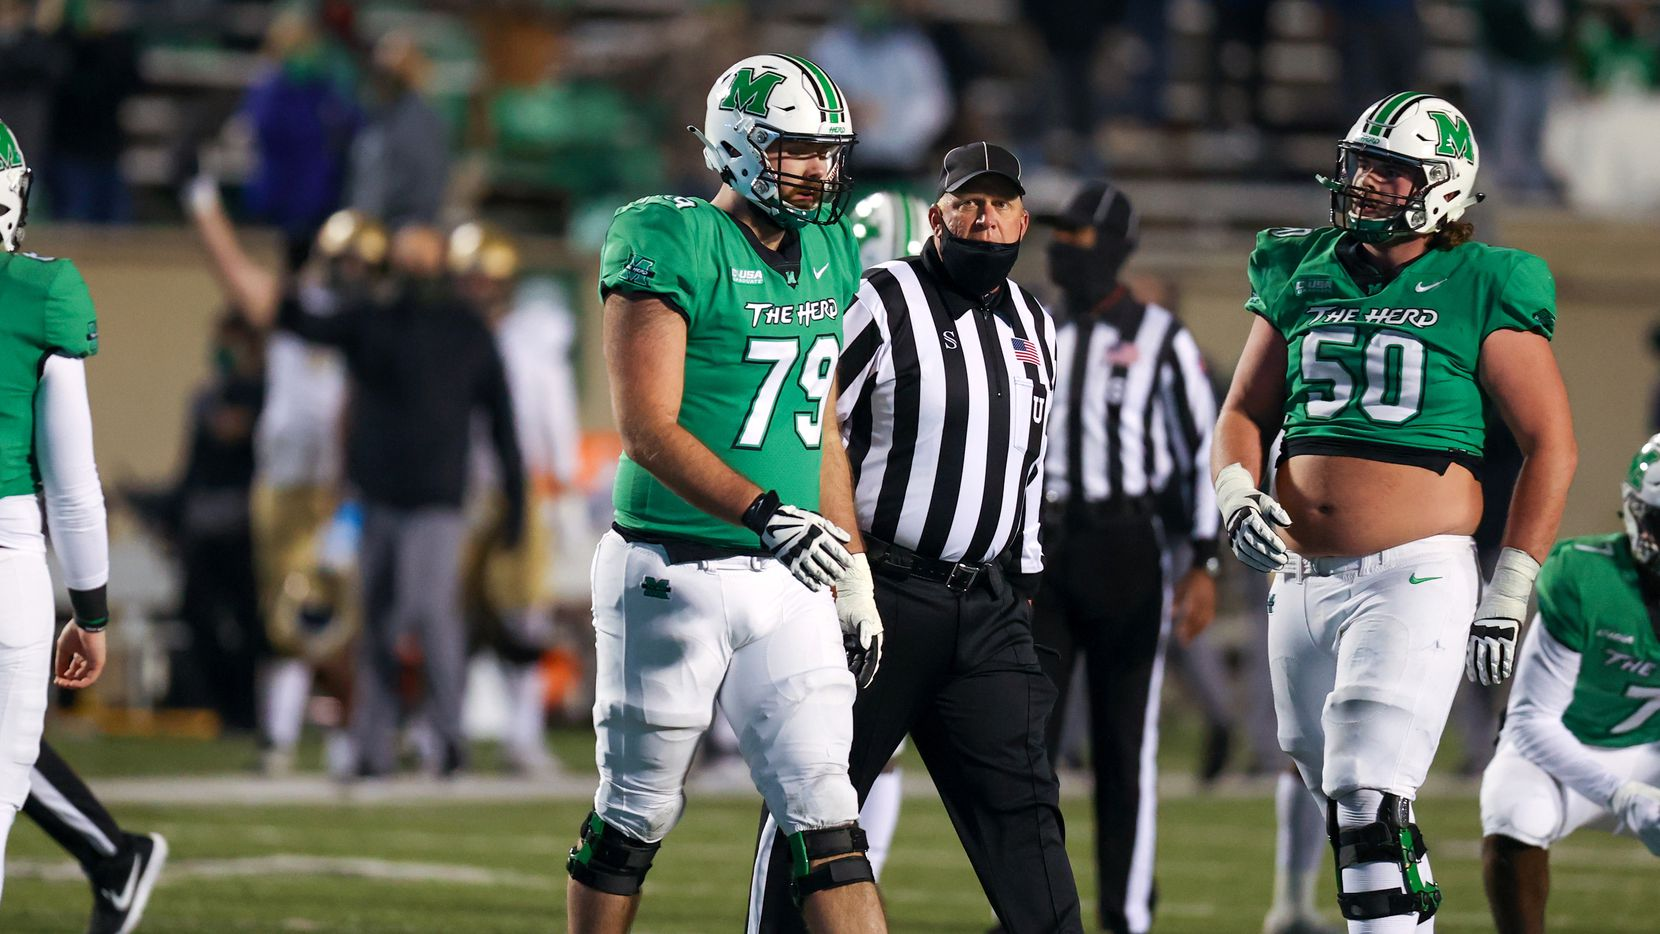 Marshall Thundering Herd offensive lineman Josh Ball (79) is escorted to the sideline by an official after being ejected during the fourth quarter of the 2020 Ryan C-USA Football Championship Game between the UAB Blazers and the Marshall Thundering Herd on October 24, 2020, at Joan C. Edwards Stadium in Huntington, WV.